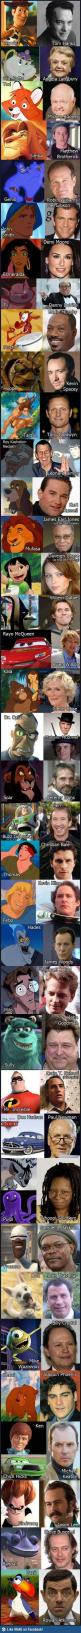 Who voiced who---Disney characters    :O